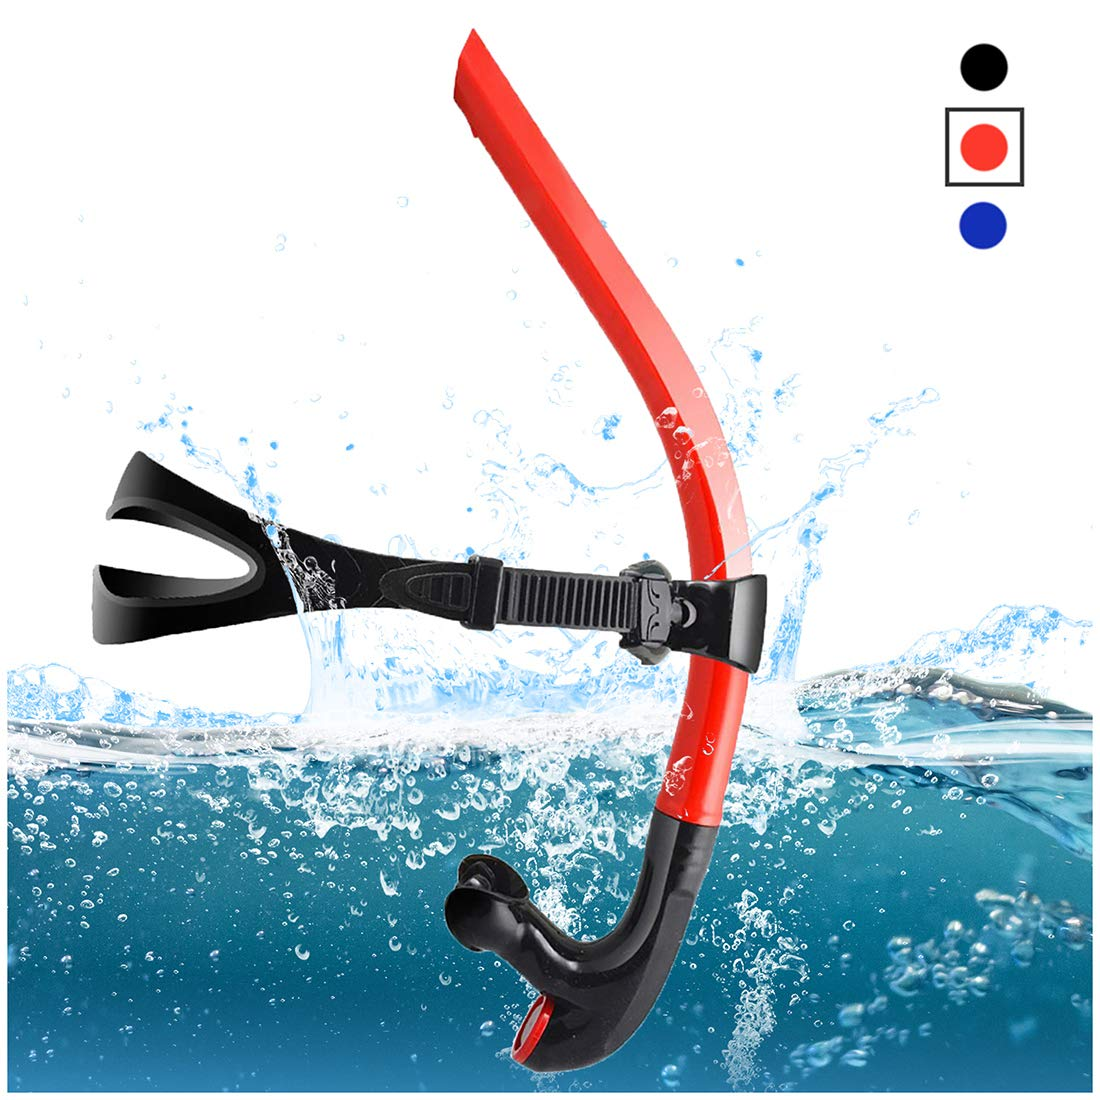 TangyueW Swim Snorkel, One-Way Purge Valve Swimmers Snorkel for Lap Swimming Training Snorkeling, Front Mounted Training Gear with Comfortable Silicone Mouthpiece (Red)